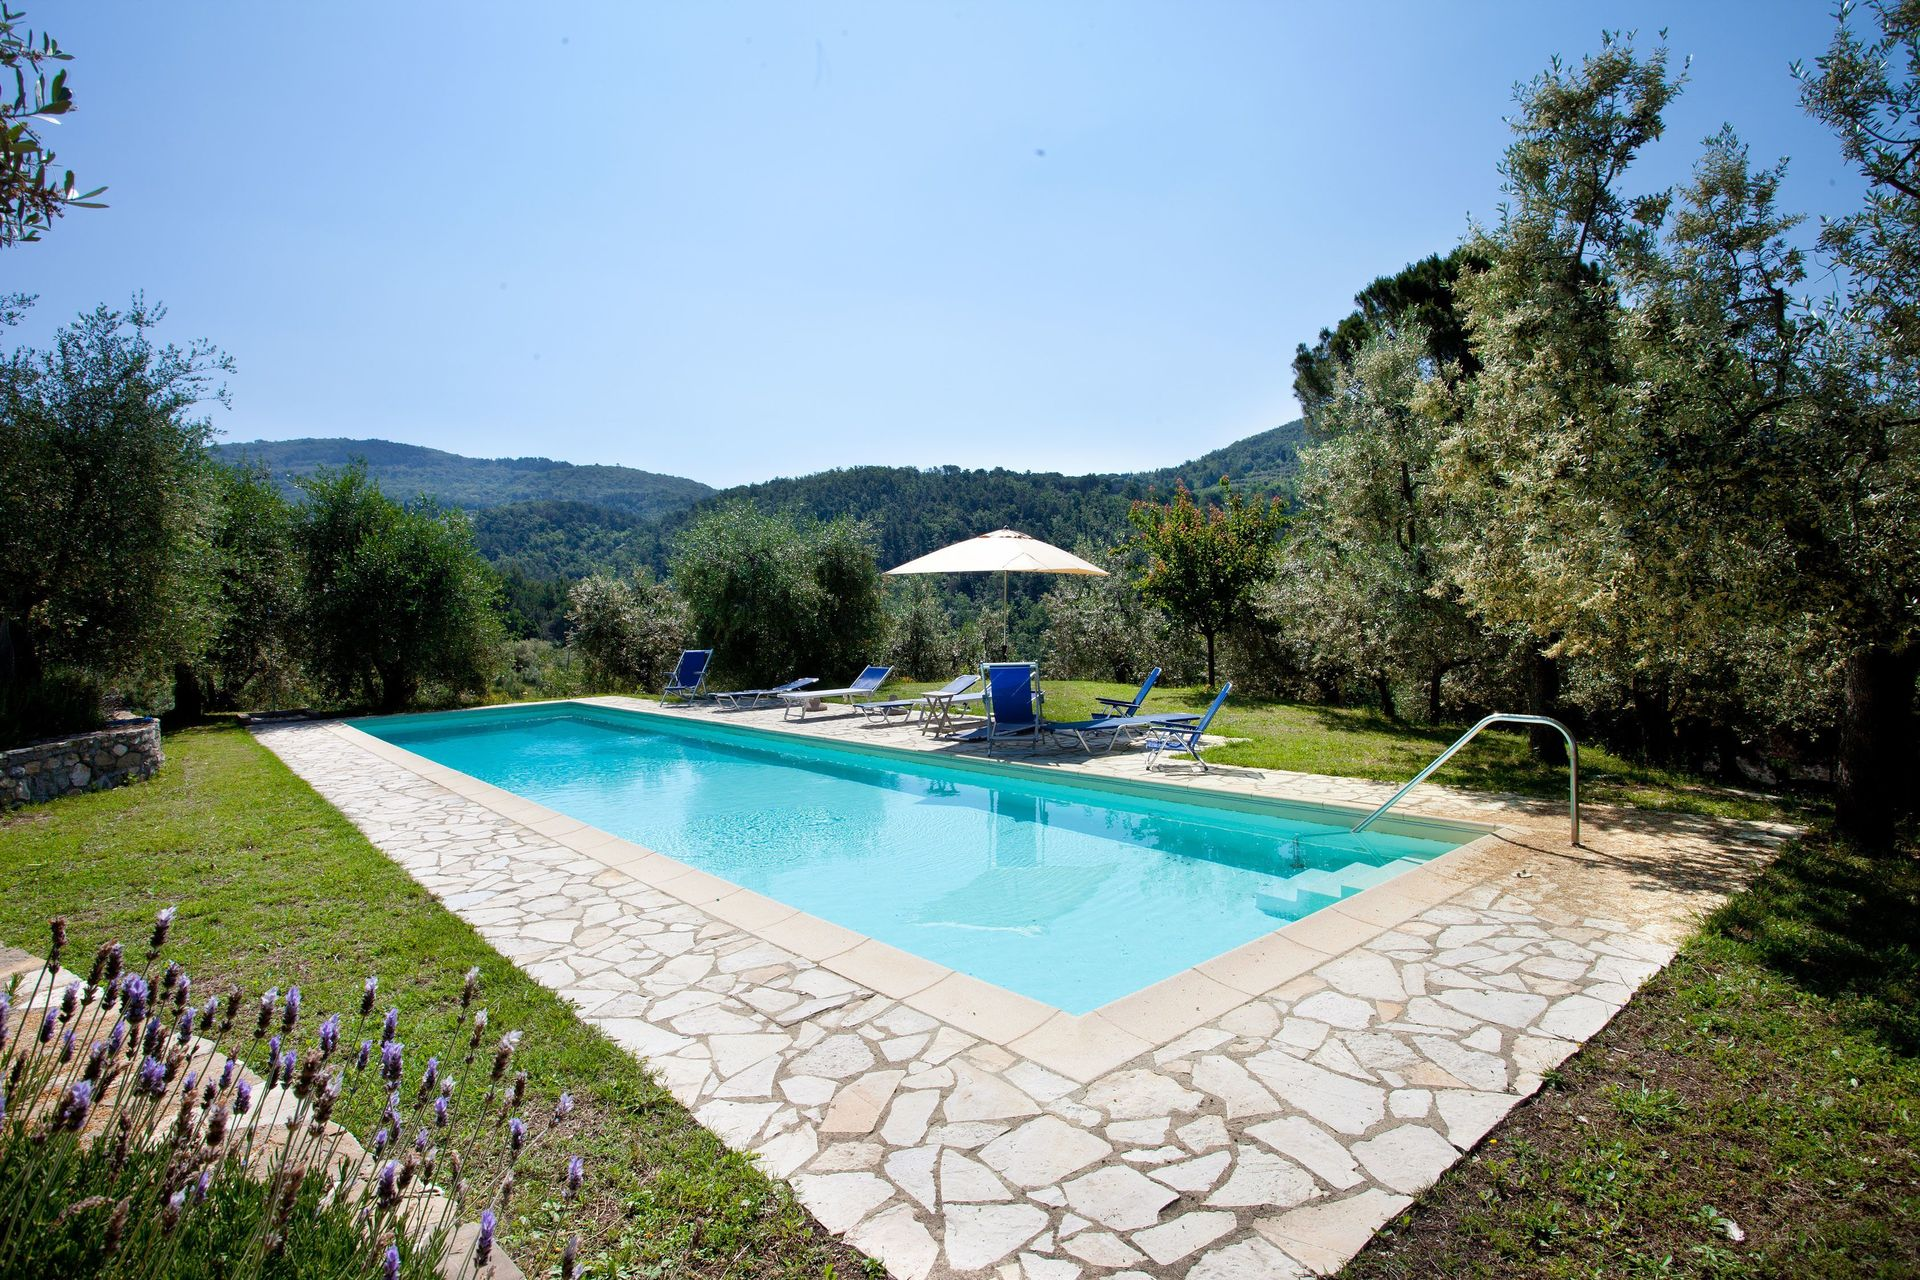 Bagno a ripoli villa vacation rental villa terrazza that sleeps 18 people in 8 bedrooms located - Bagno a ripoli italia ...